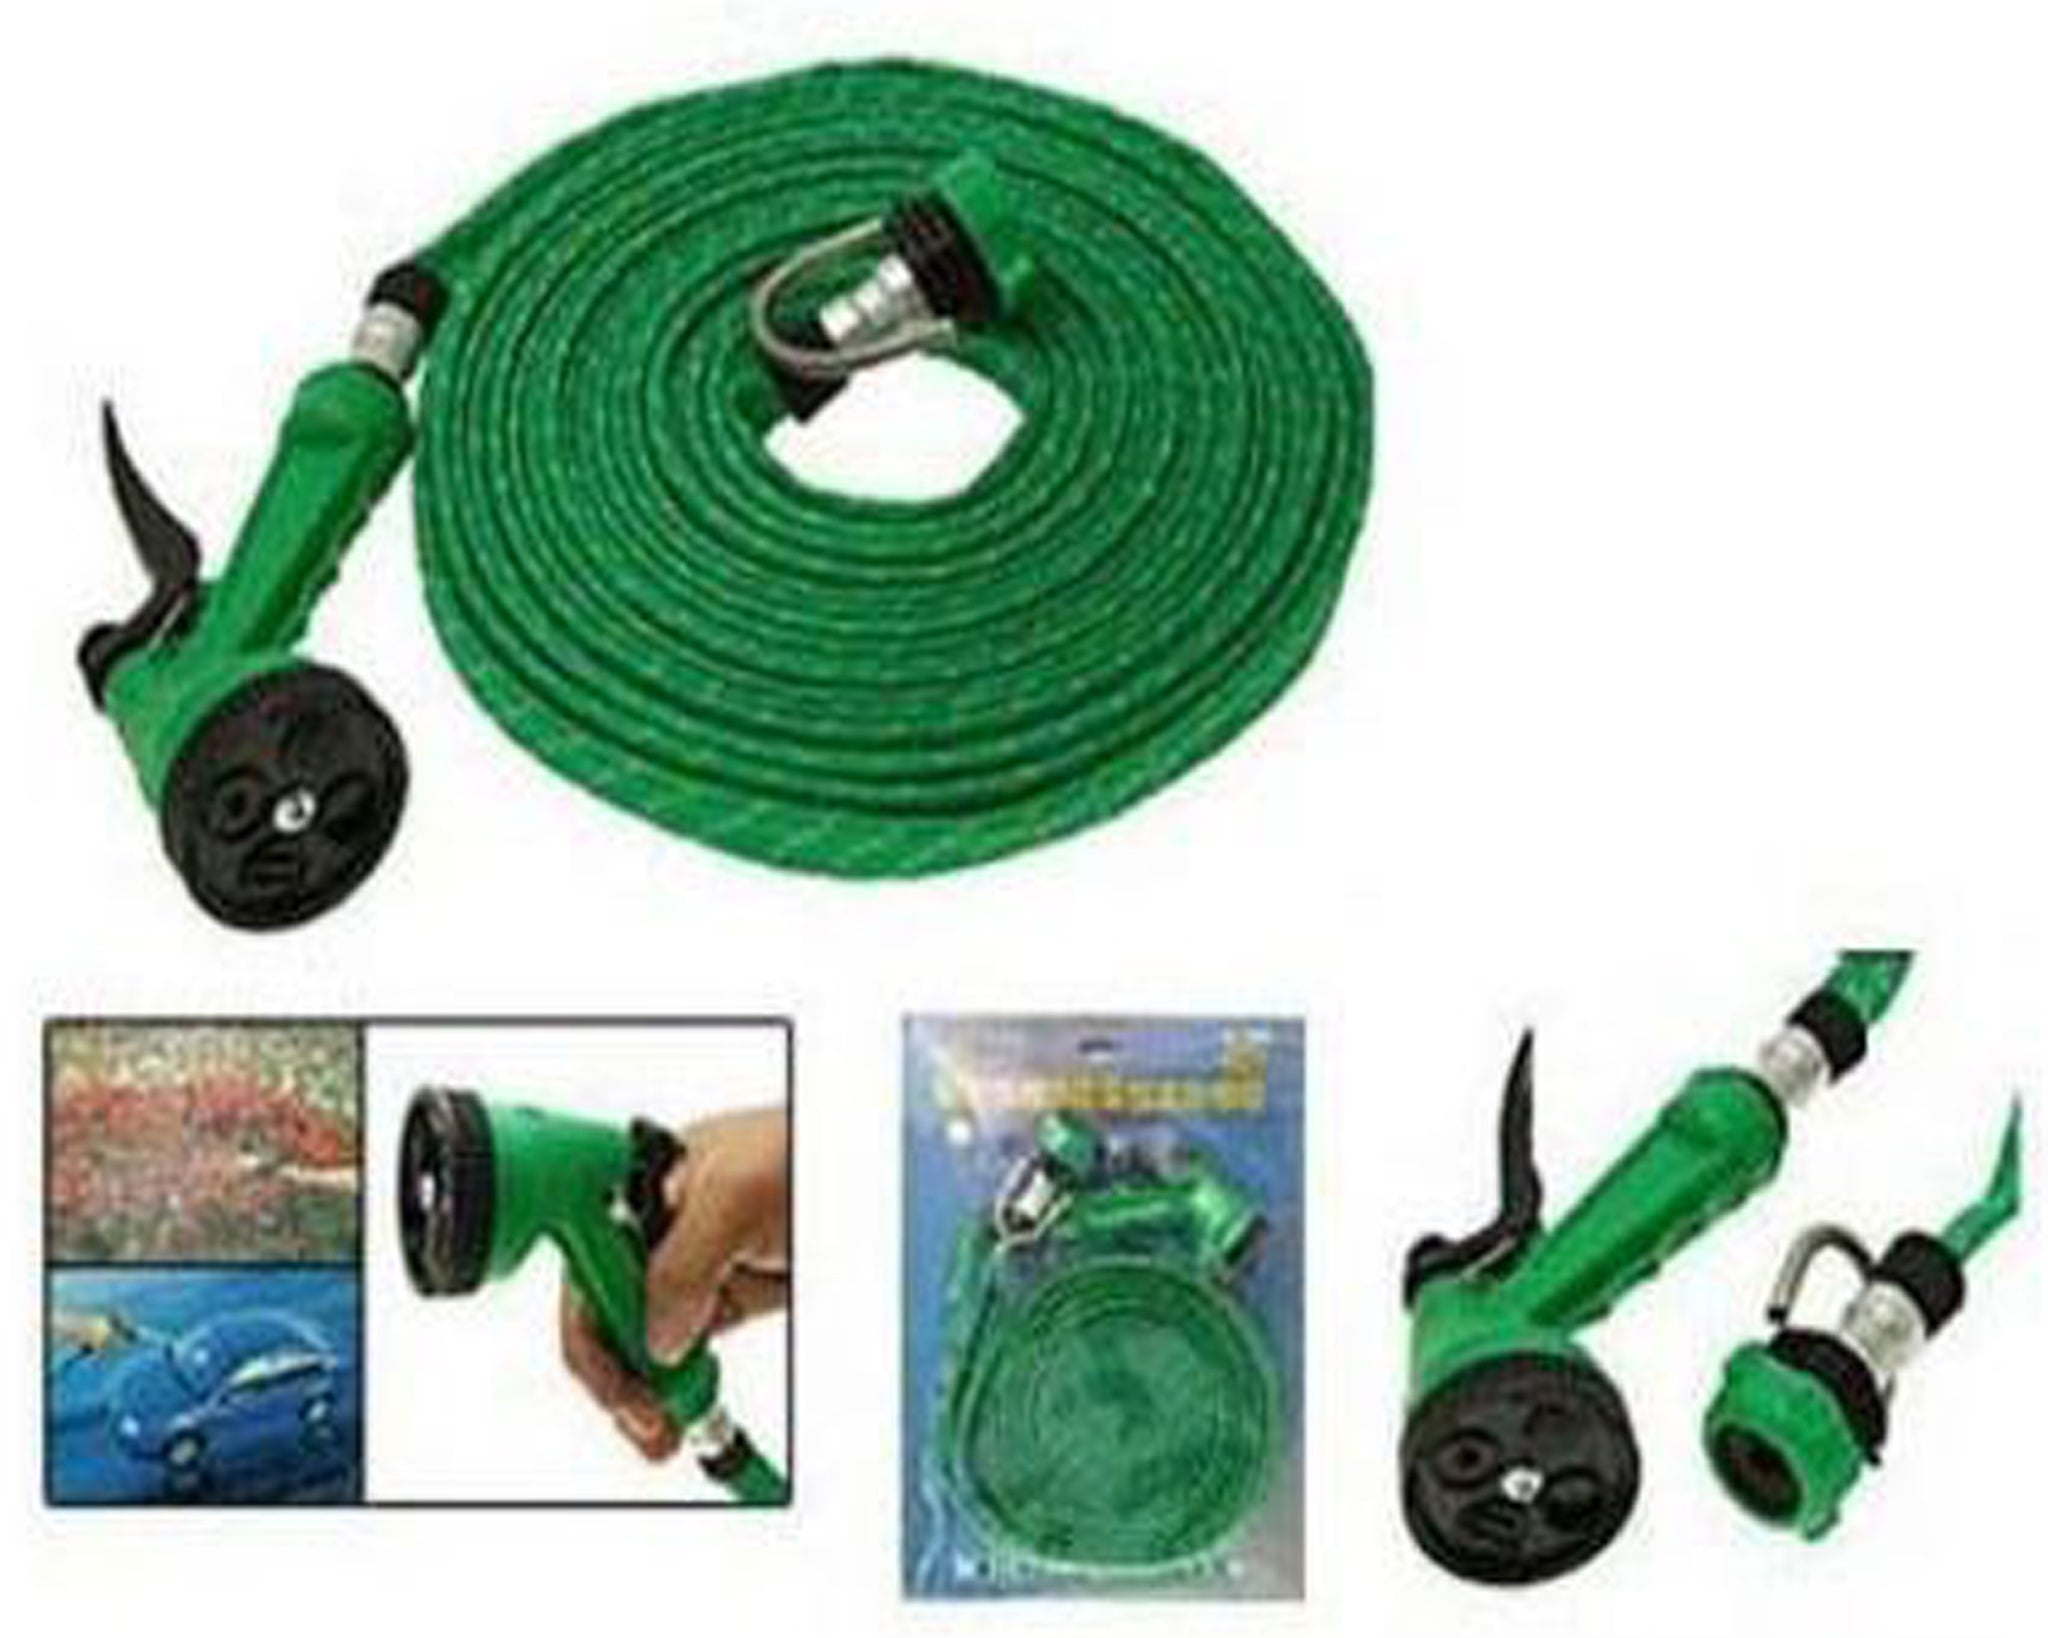 10 meter Water Spray Gun for Home Car Cleaning Gardening Plant Tree Watering - SPRGN